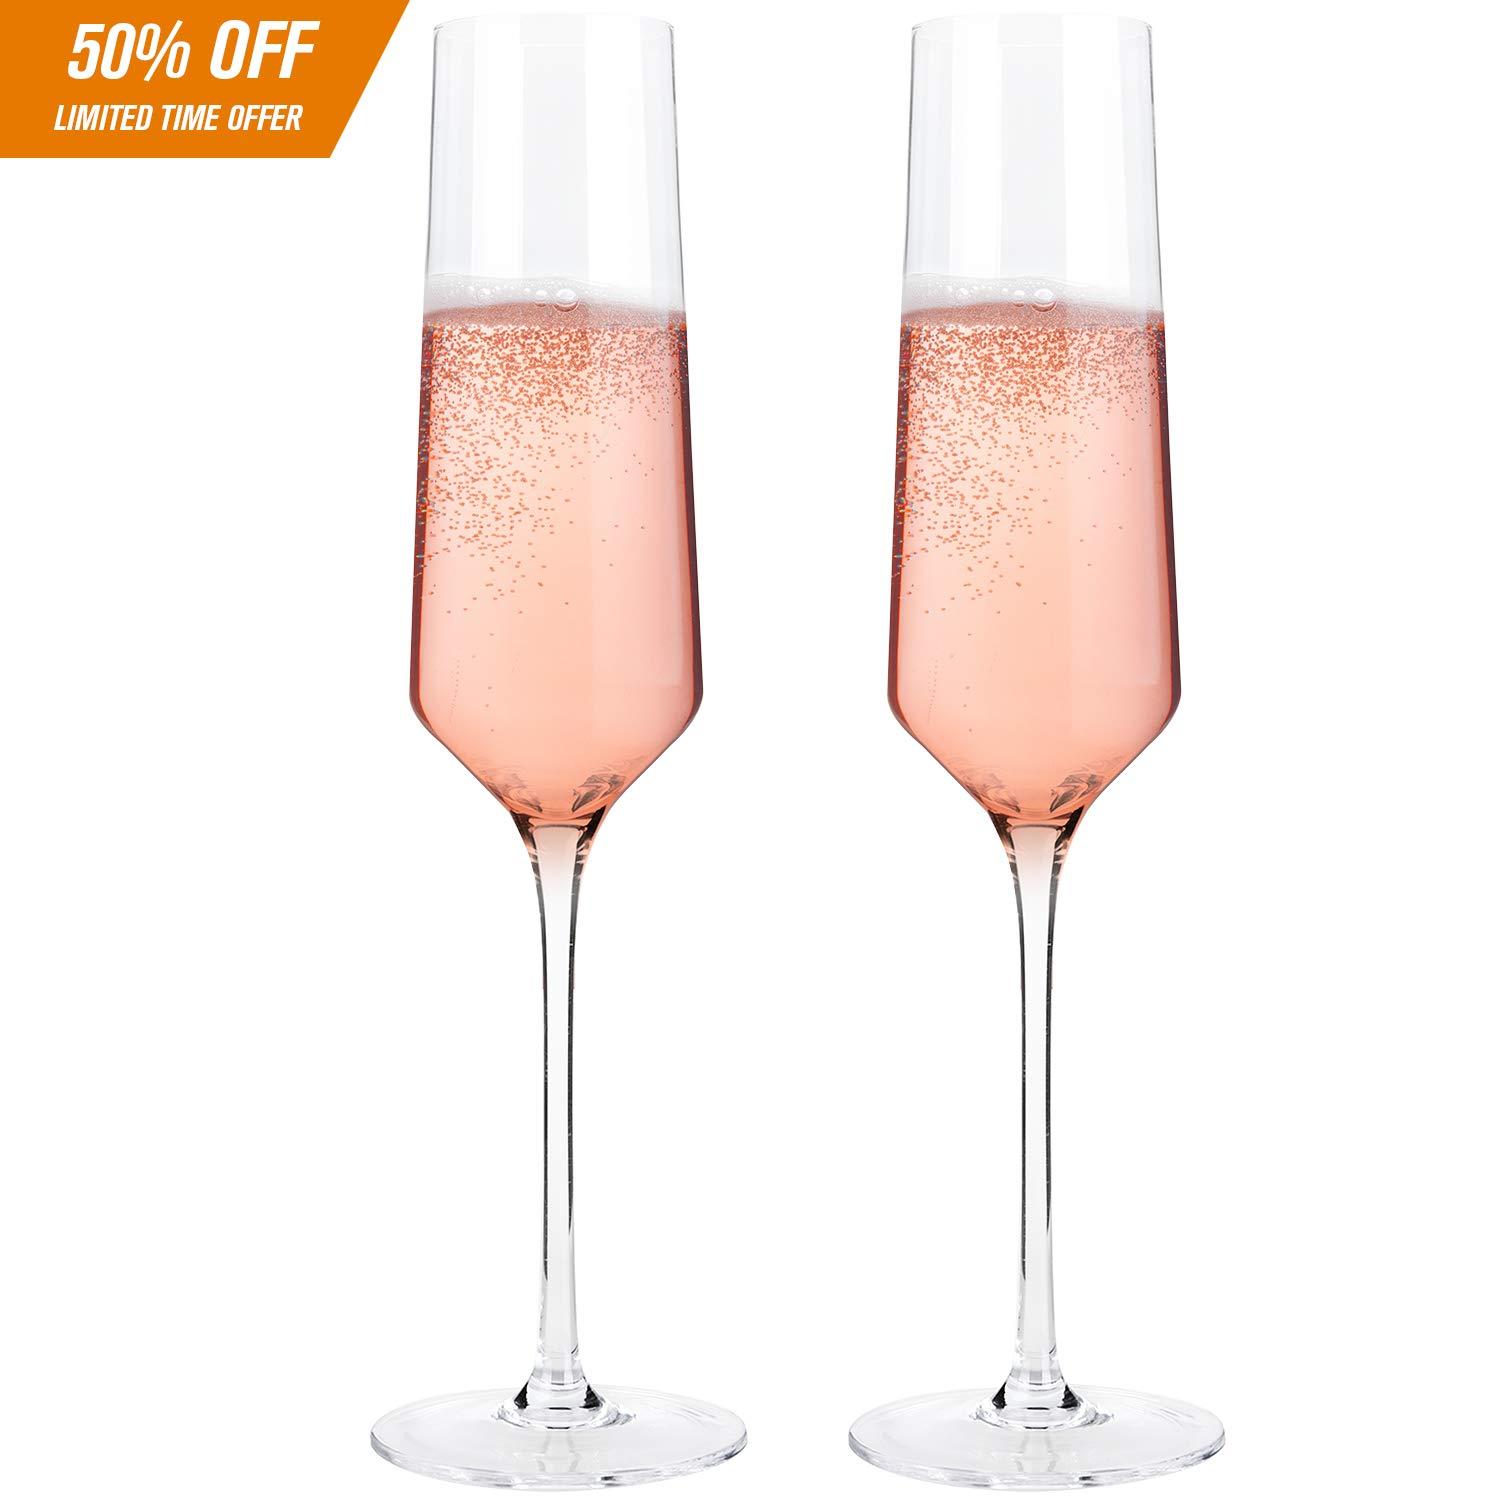 Classy Champagne Flutes by Bella Vino - Hand Blown Crystal Champagne Glasses Made from 100% Lead Free Premium Crystal Glass, Perfect for Any Occasion,Great Gift, 10'', 7 Oz, Set of 2, Clear